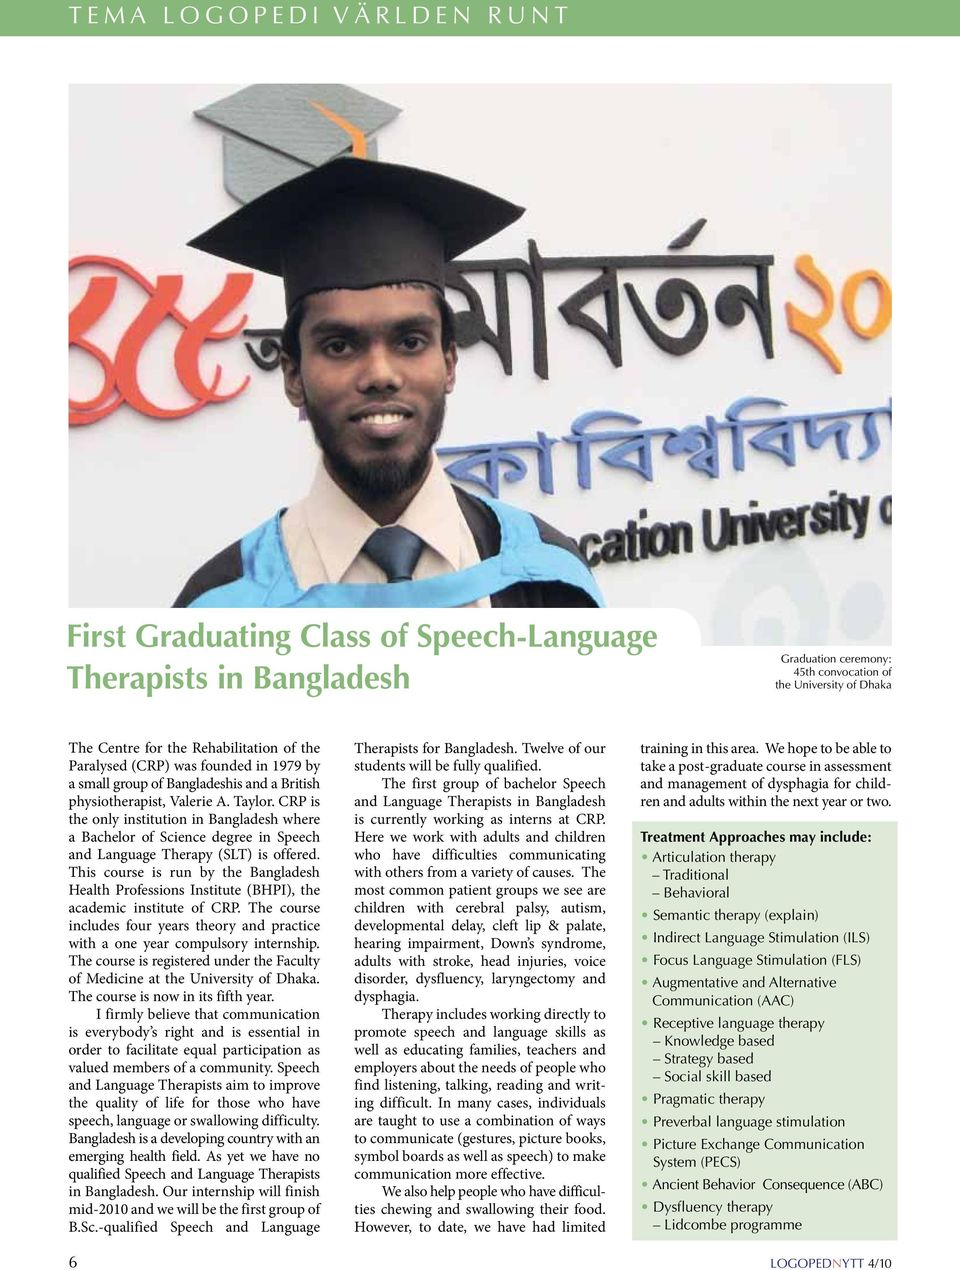 CRP is the only institution in Bangladesh where a Bachelor of Science degree in Speech and Language Therapy (SLT) is offered.